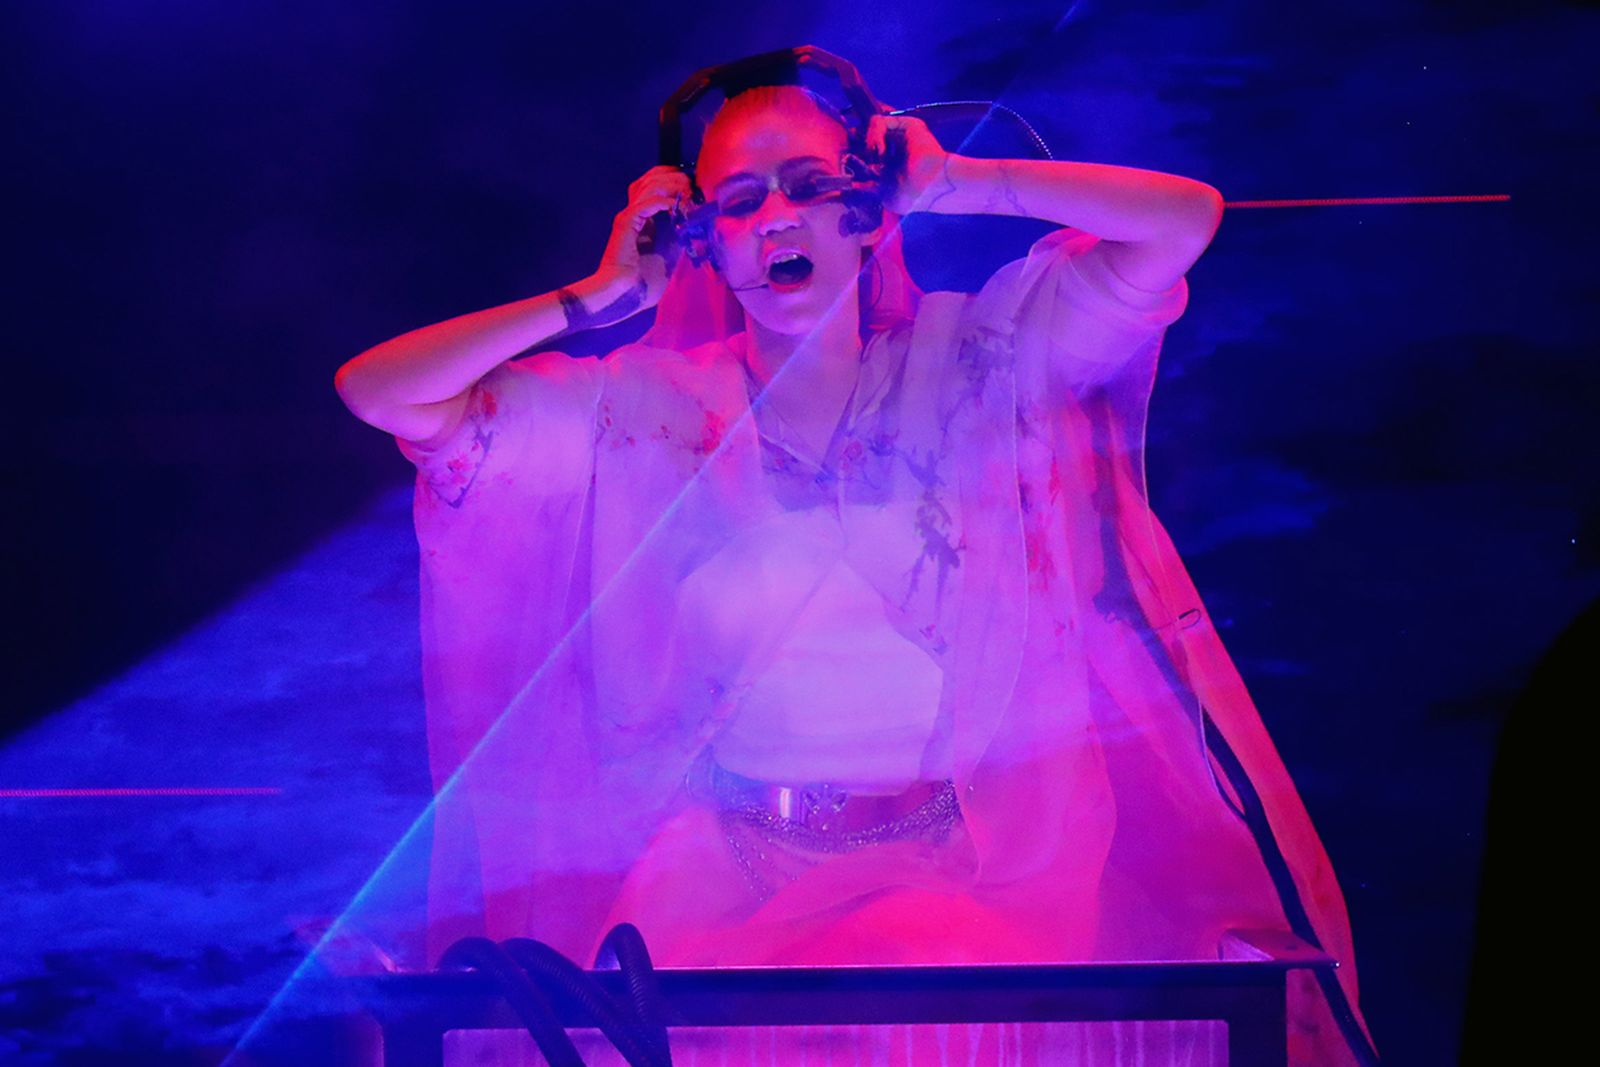 Grimes performing